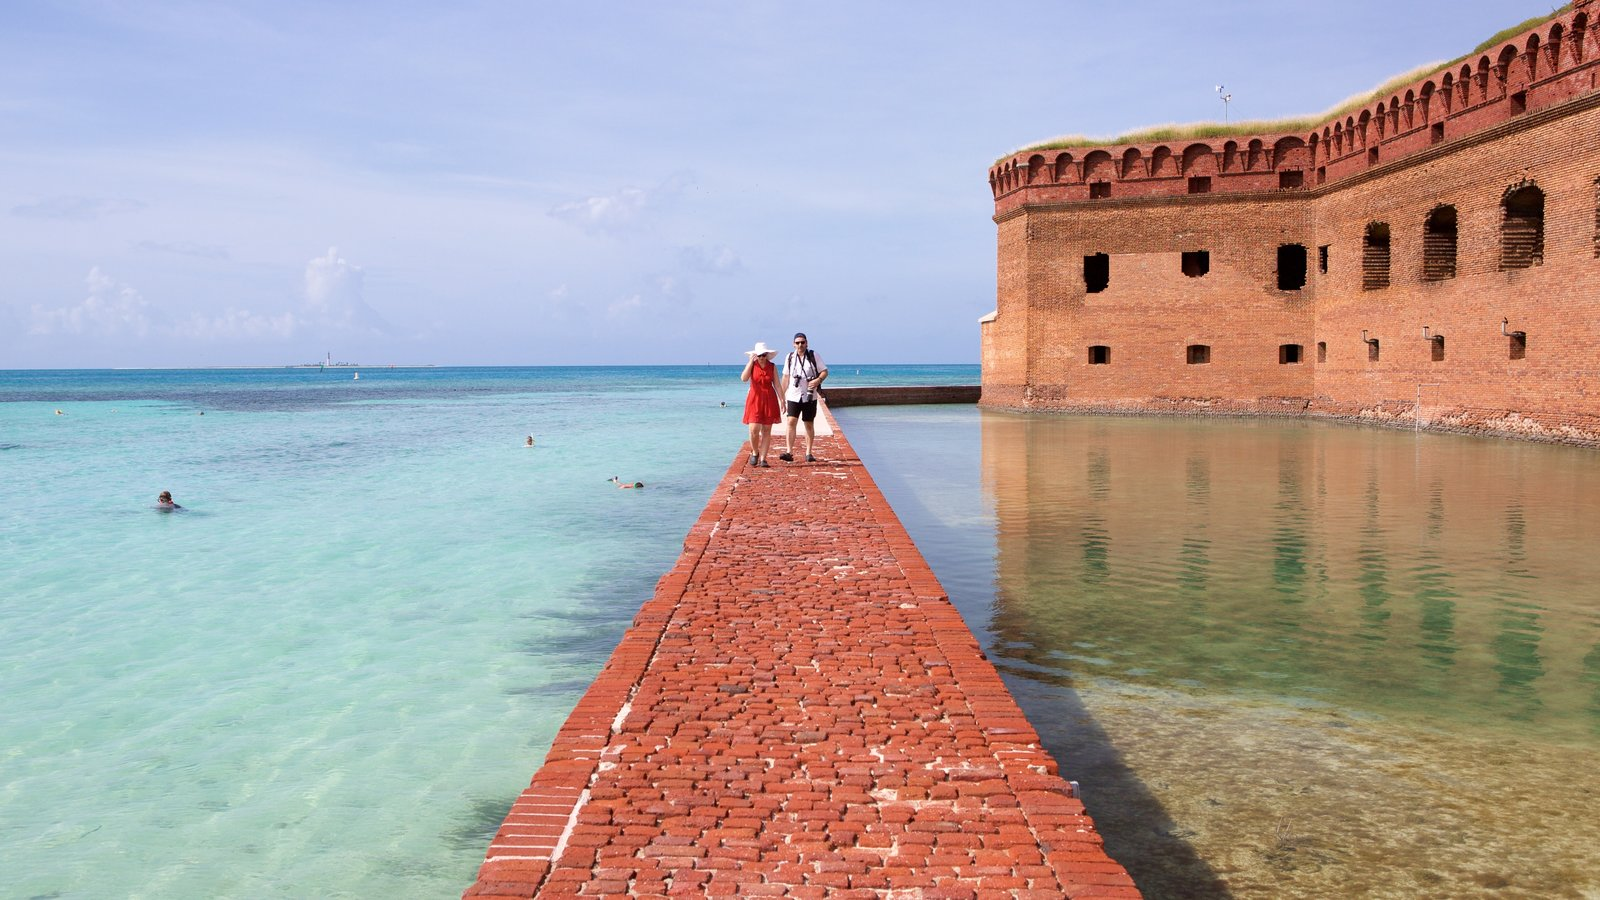 Dry Tortugas National Park showing heritage architecture and general coastal views as well as a couple